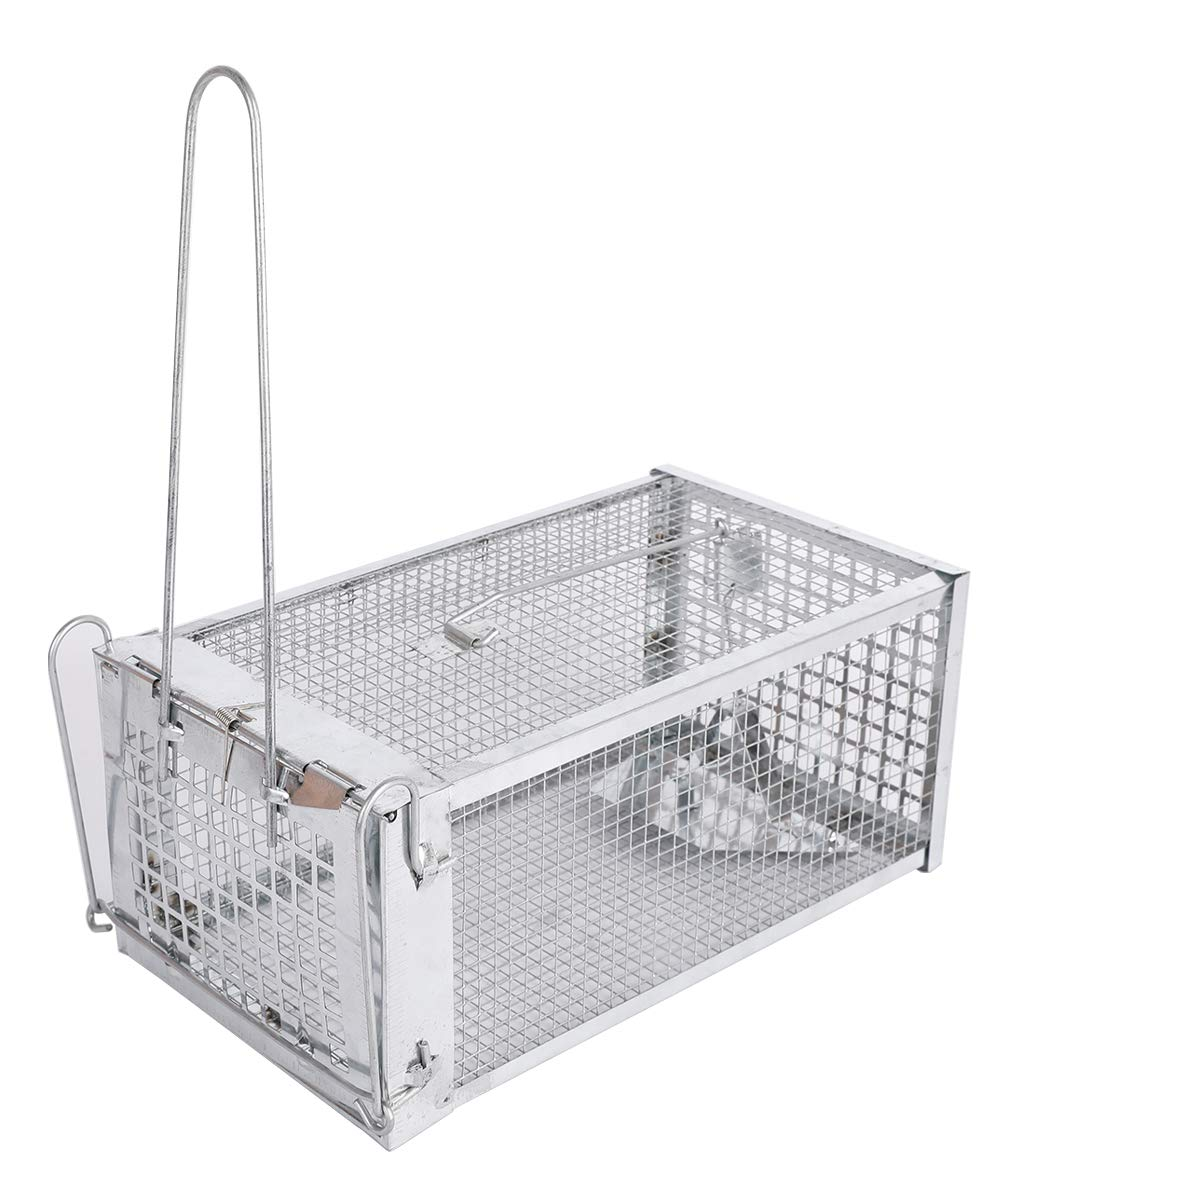 ALLRoad Live Animal Humane Trap Catch Trap Catch Chipmunks,Rats Similar Sized Catch for Indoor and Outdoor by ALLRoad